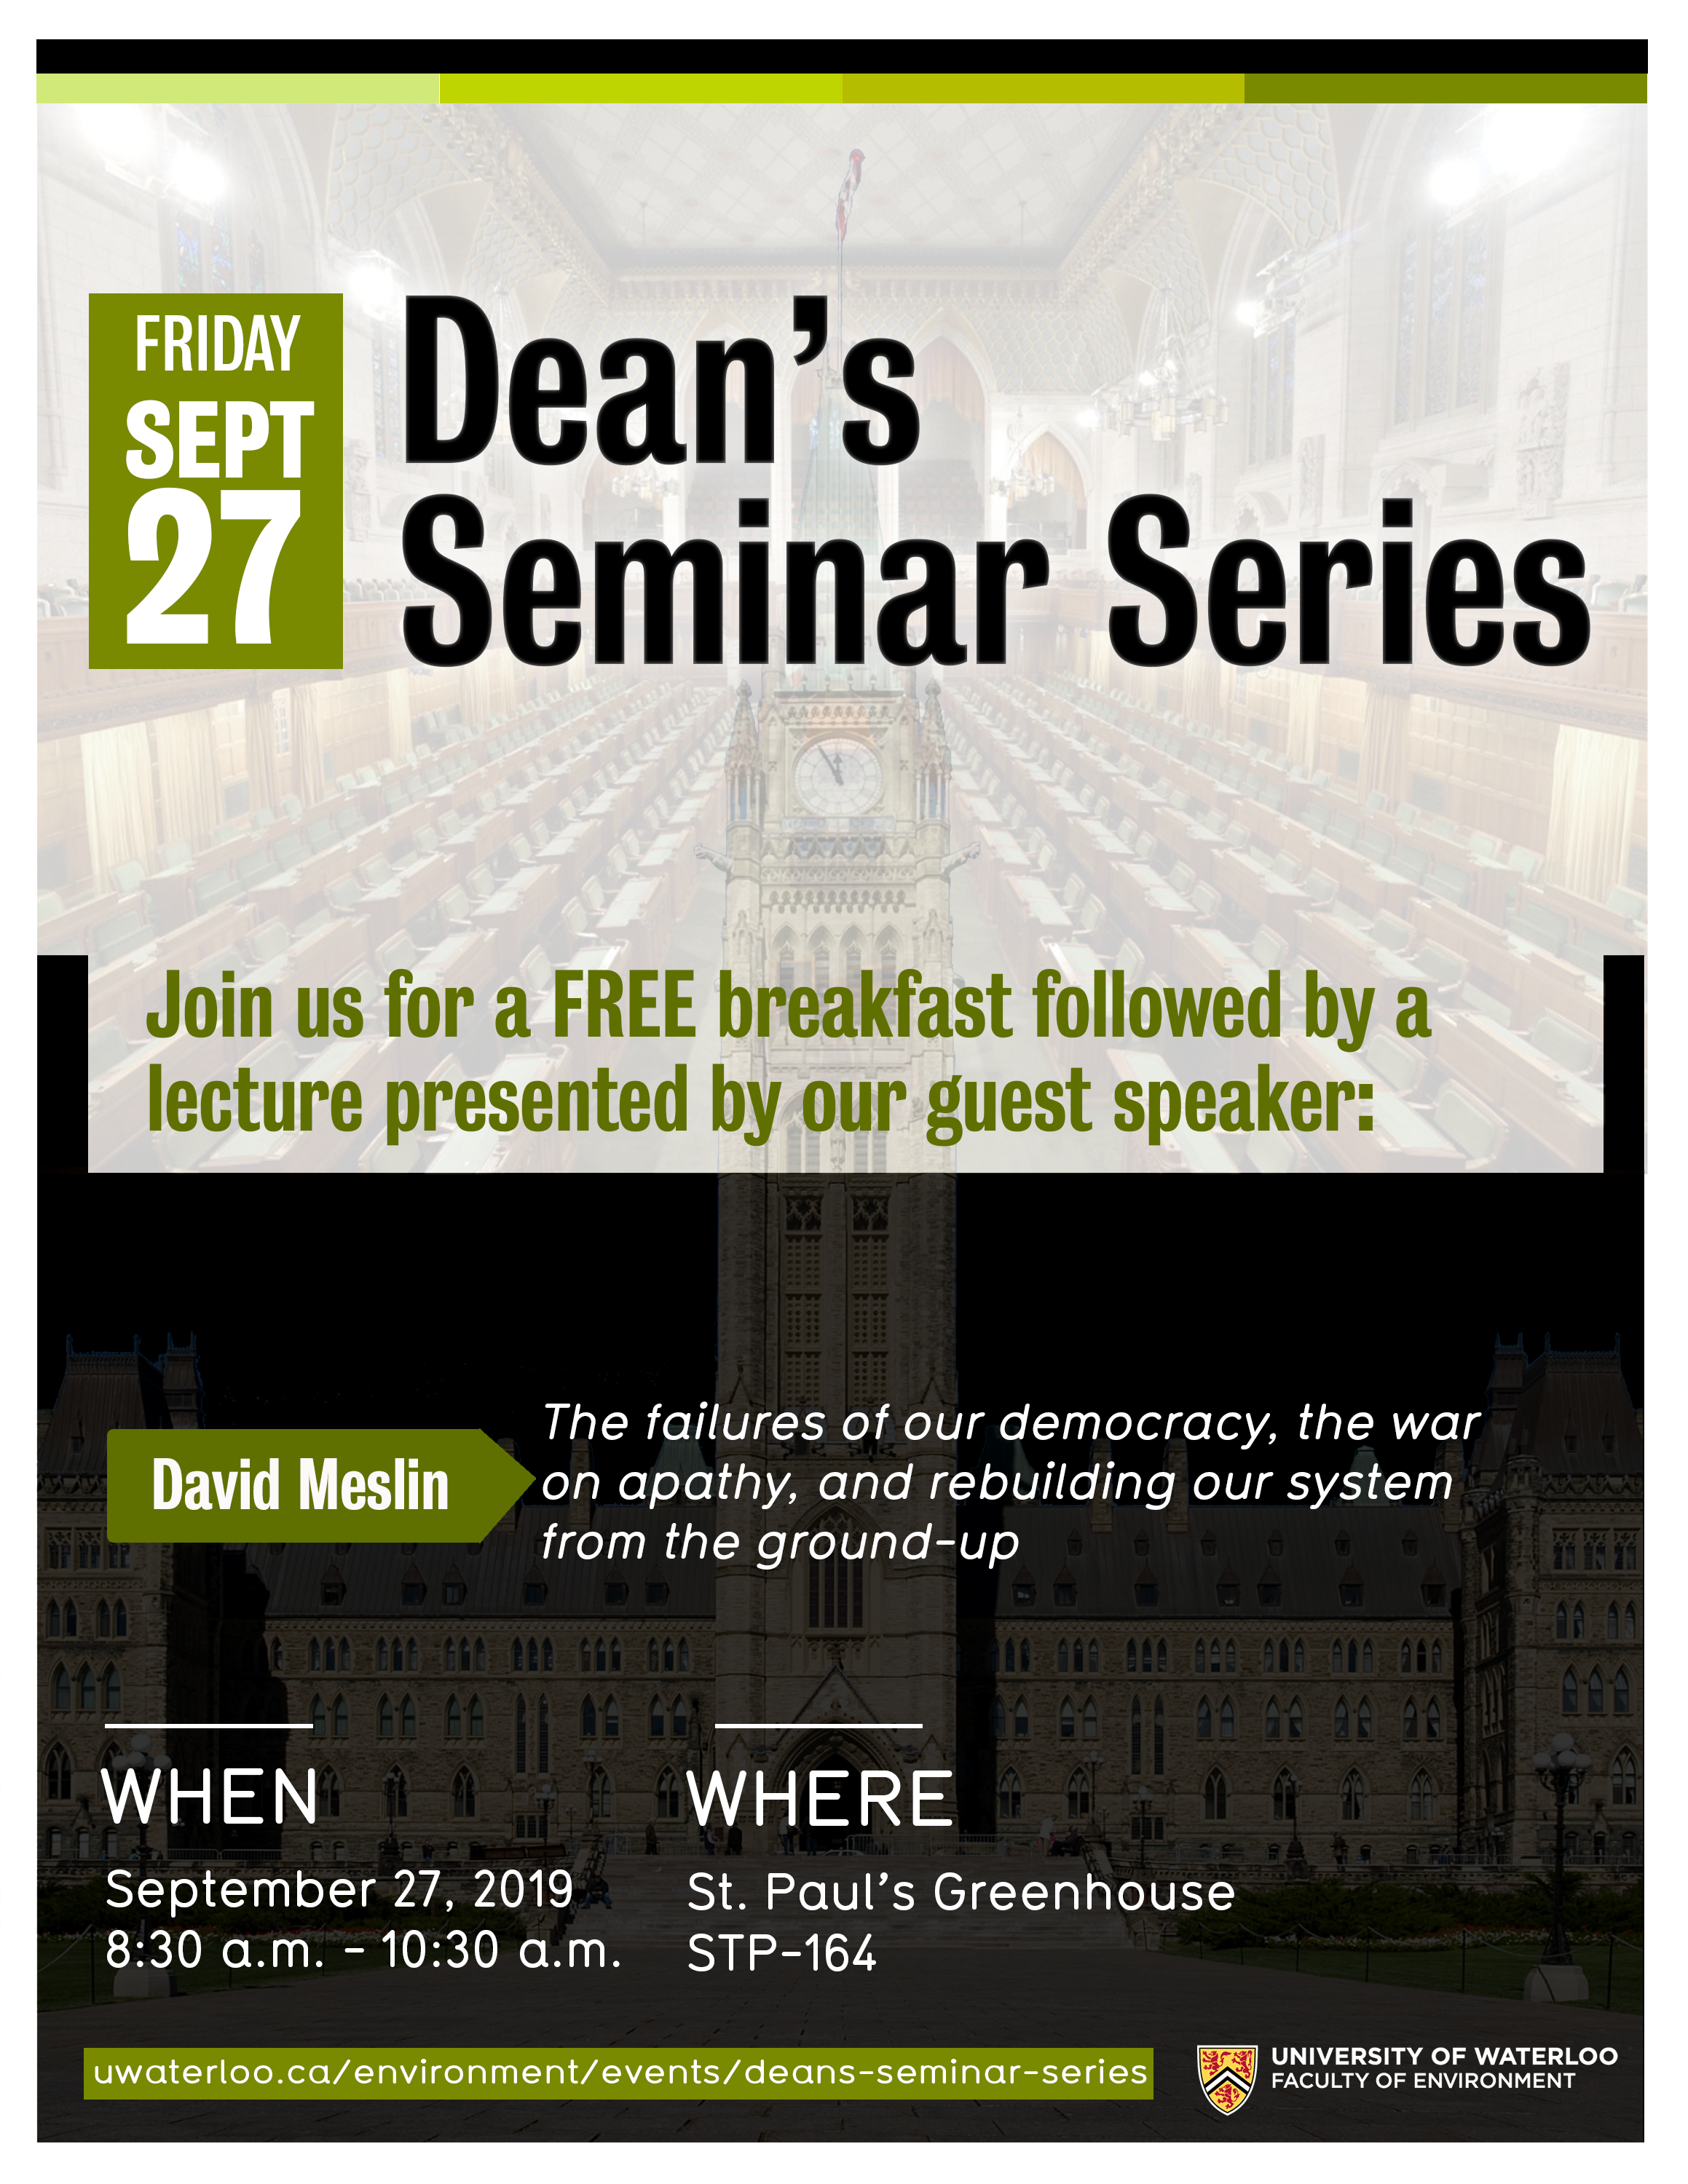 Poster with information about dean's seminar series